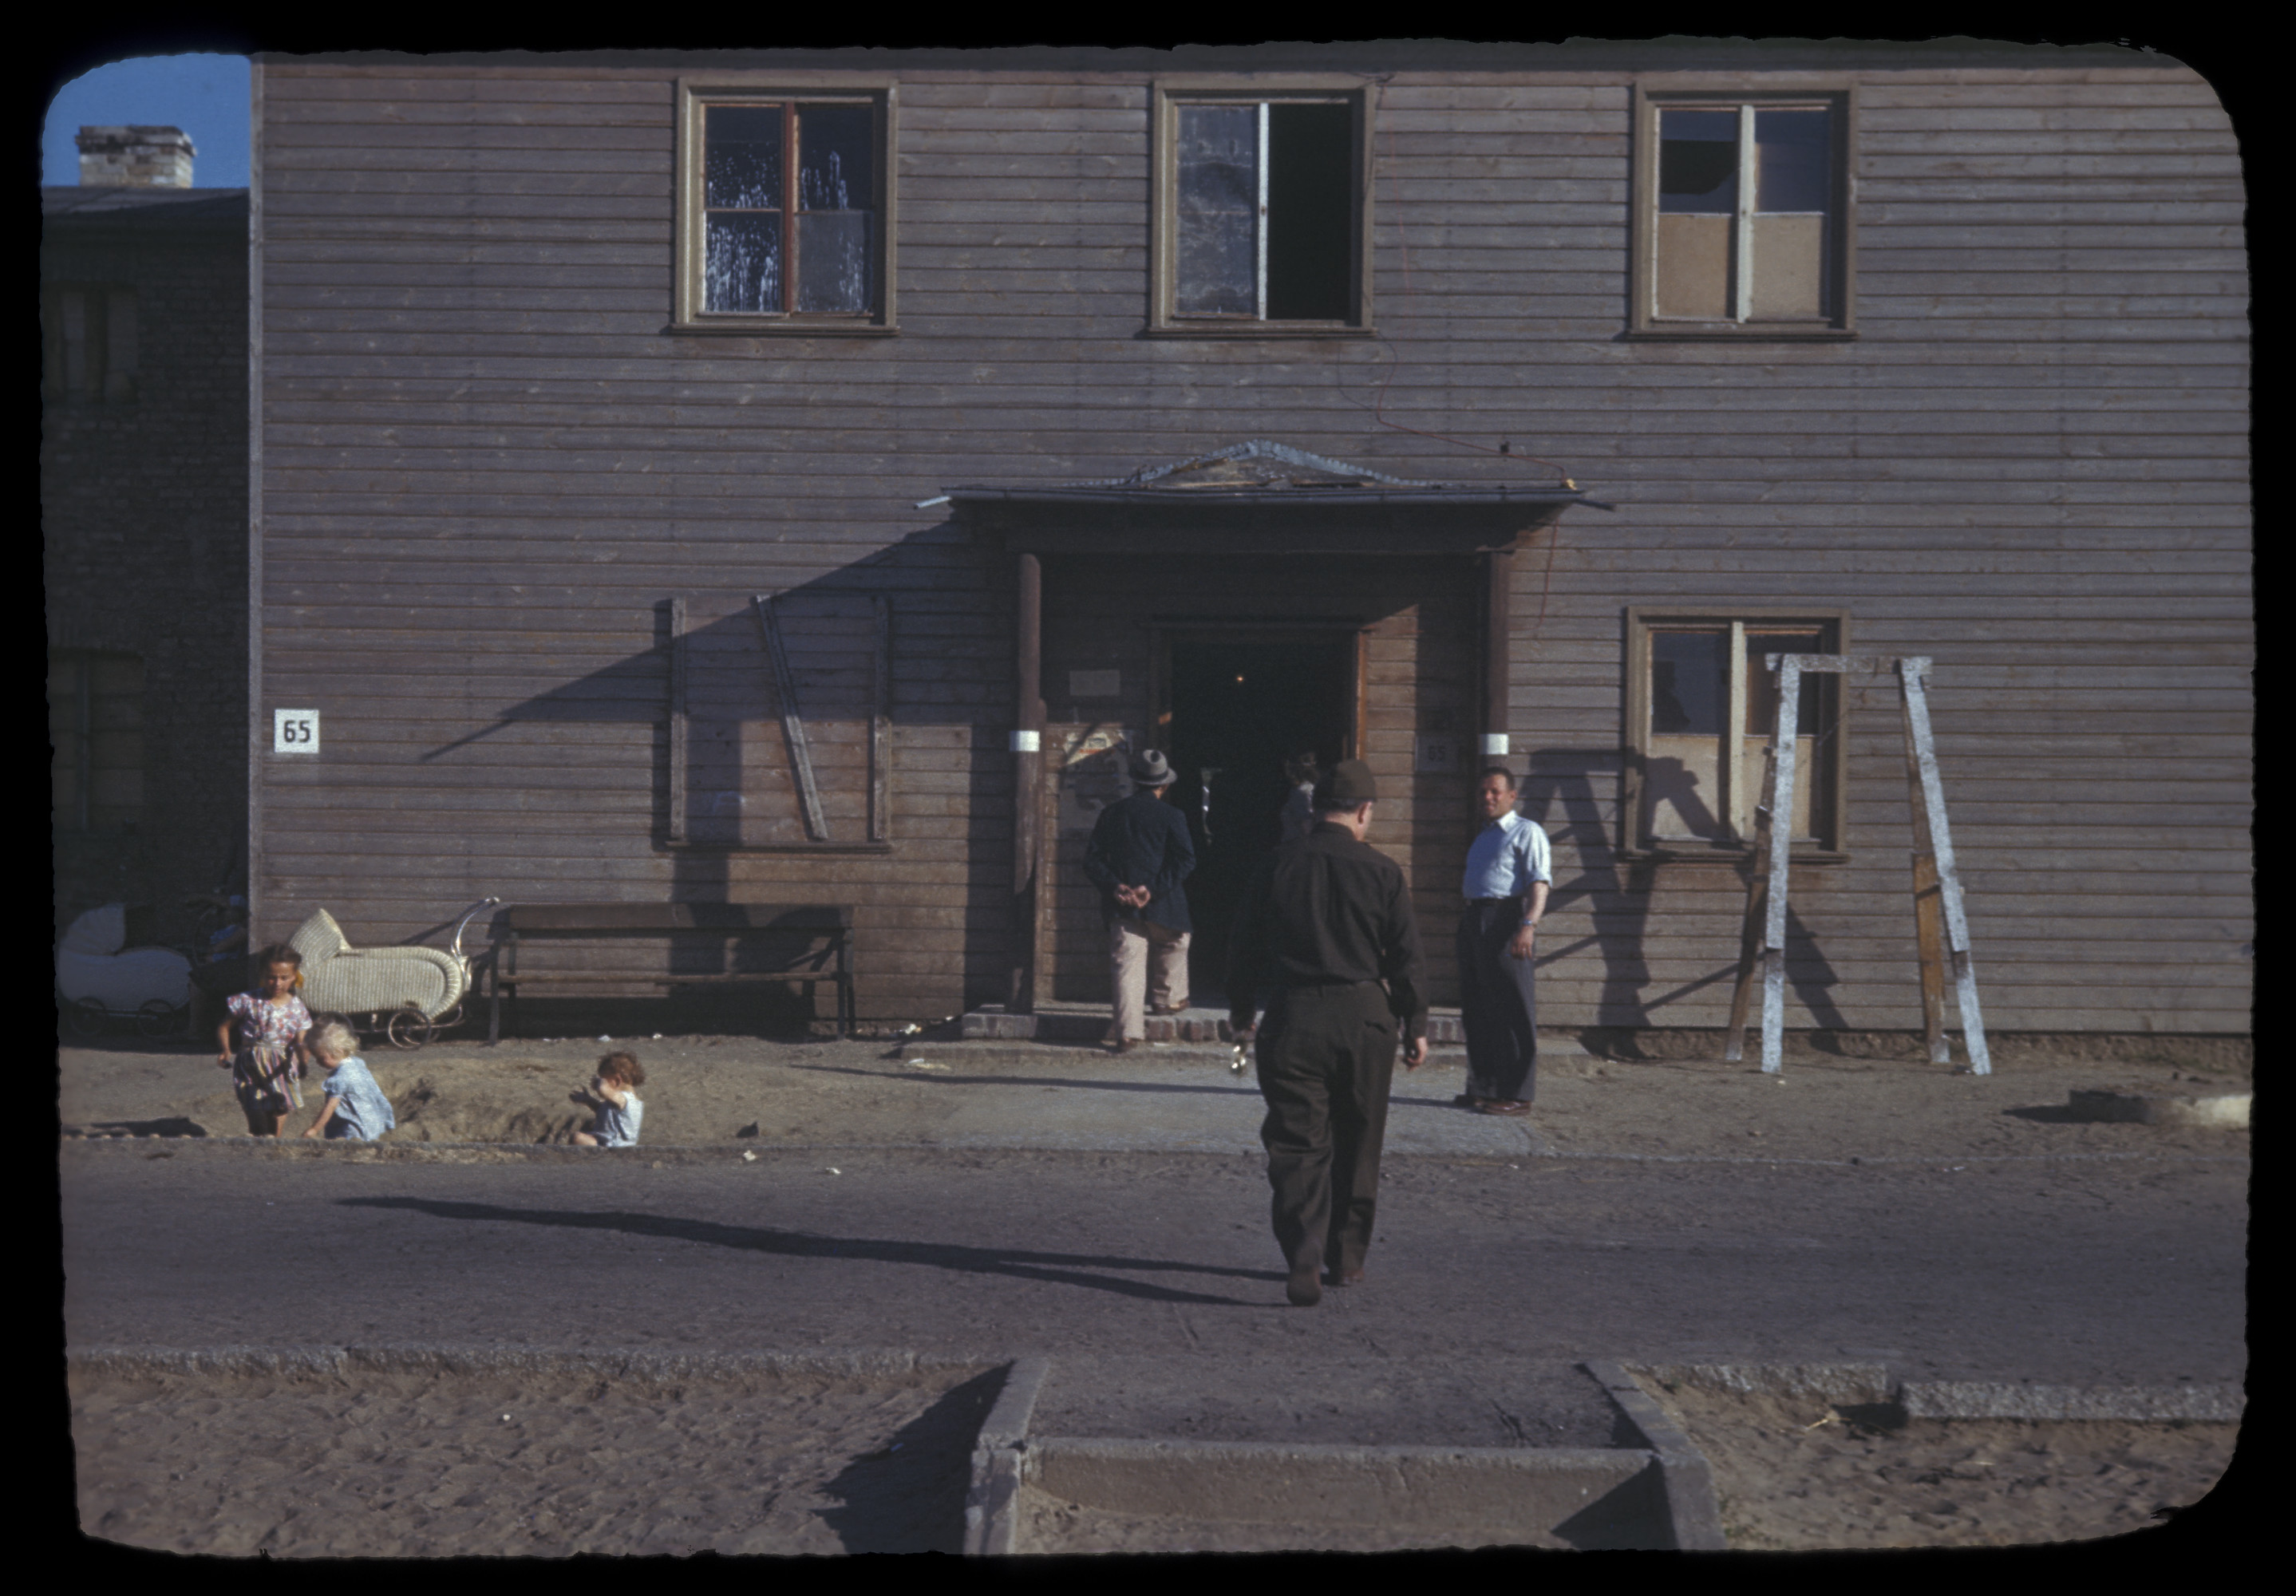 Several men enter a building at a displaced person's camp in Berlin, as young children play along the road.